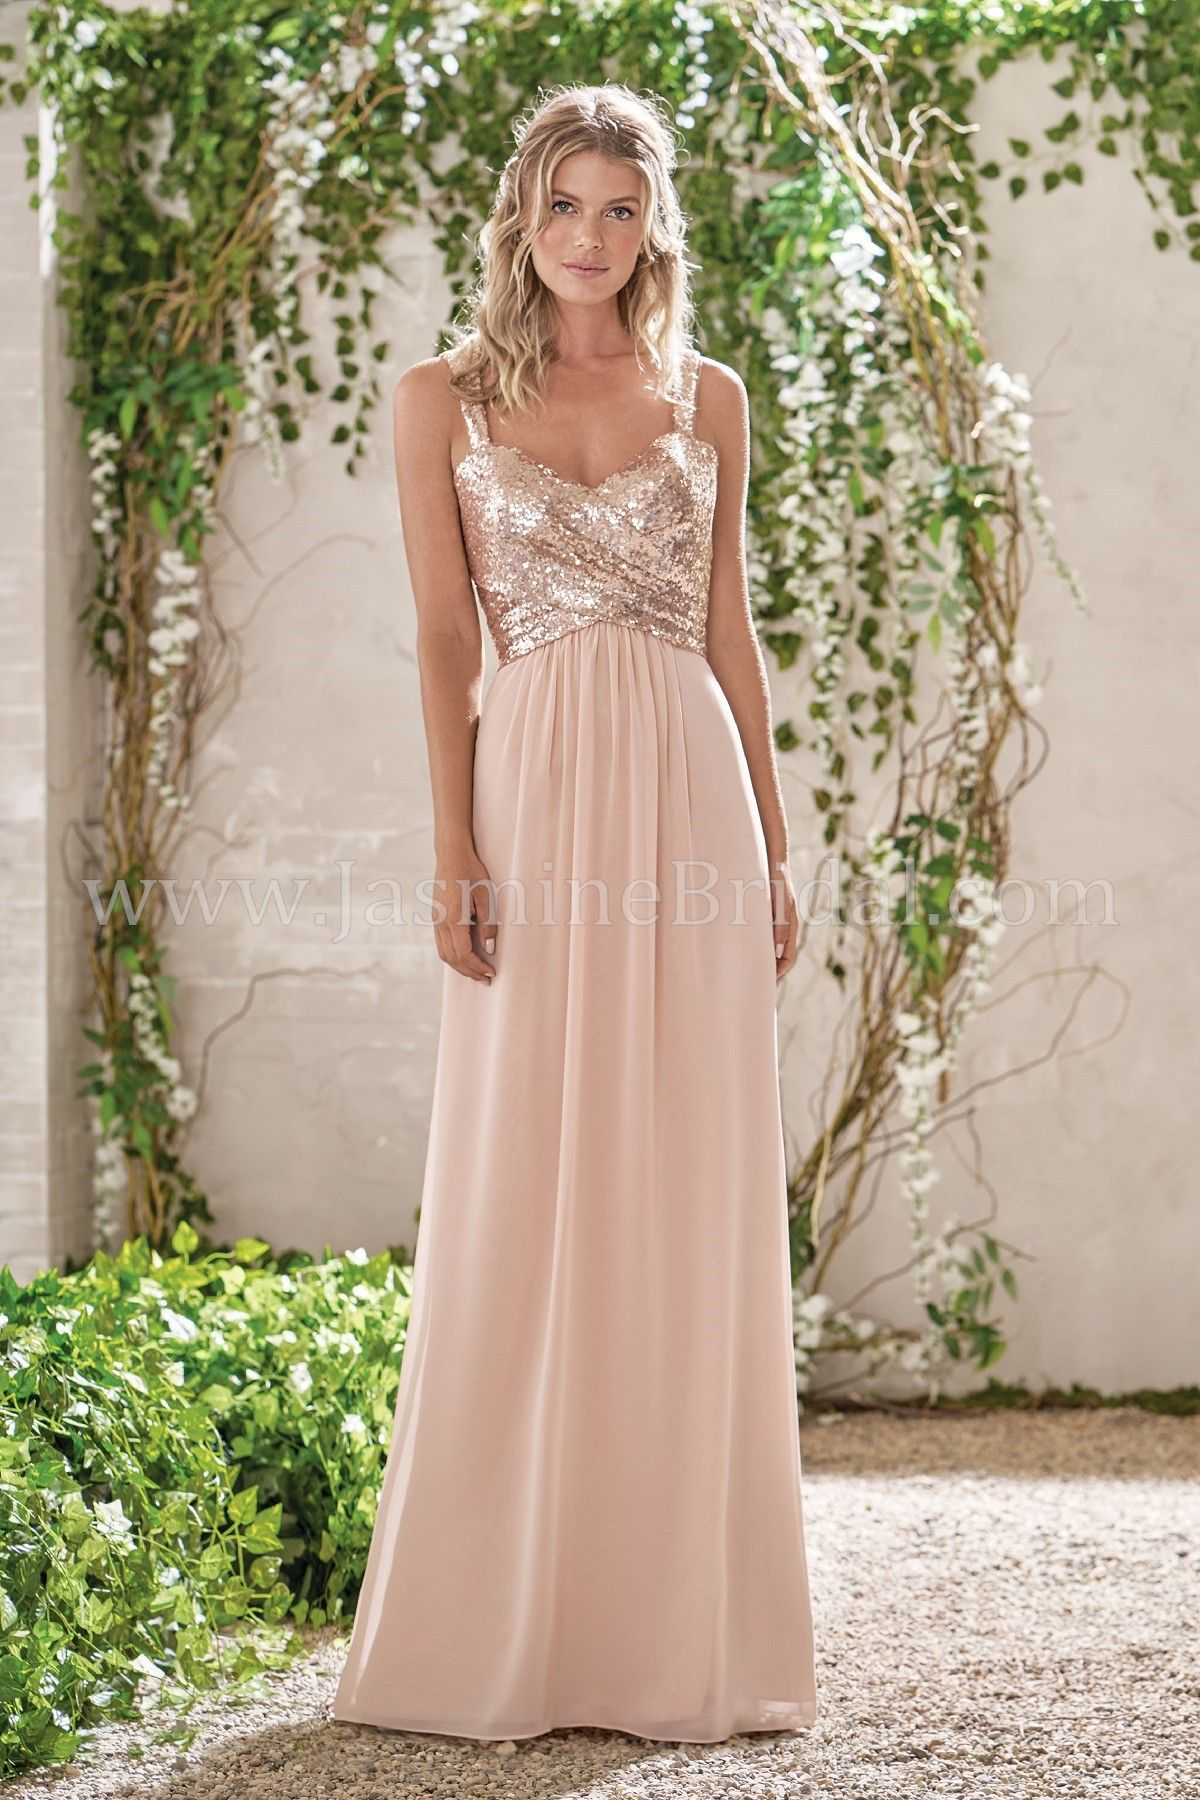 4ade104d1b1 Jasmien Bridal Long Sweetheart Neckline Sequin   Poly Chiffon Bridesmaid  Dress